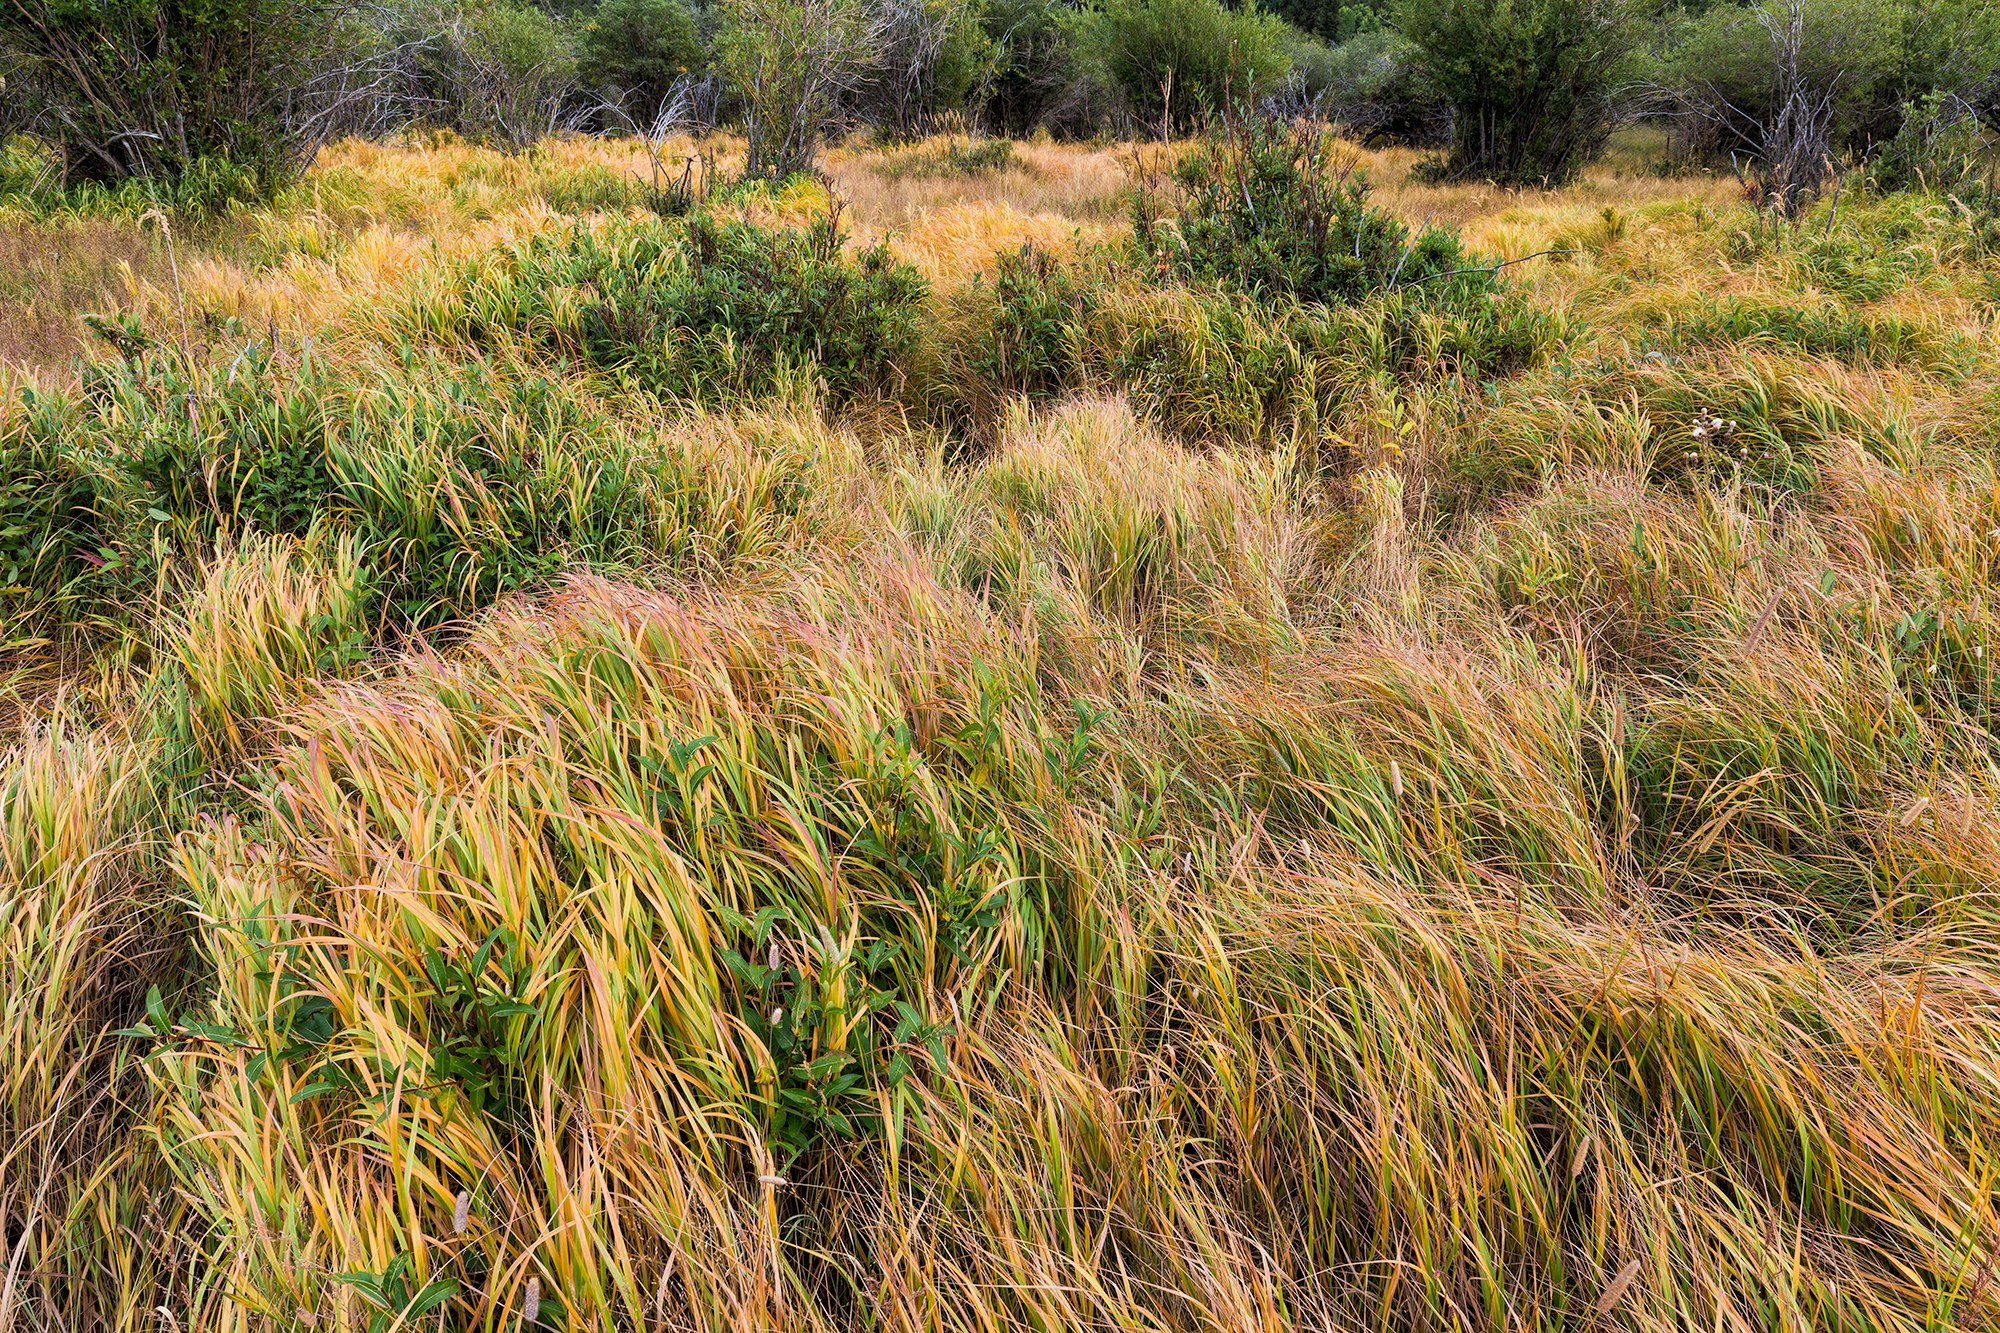 Autumn Grasses, #2. Caribou Ranch Open Space, Colorado, 2016